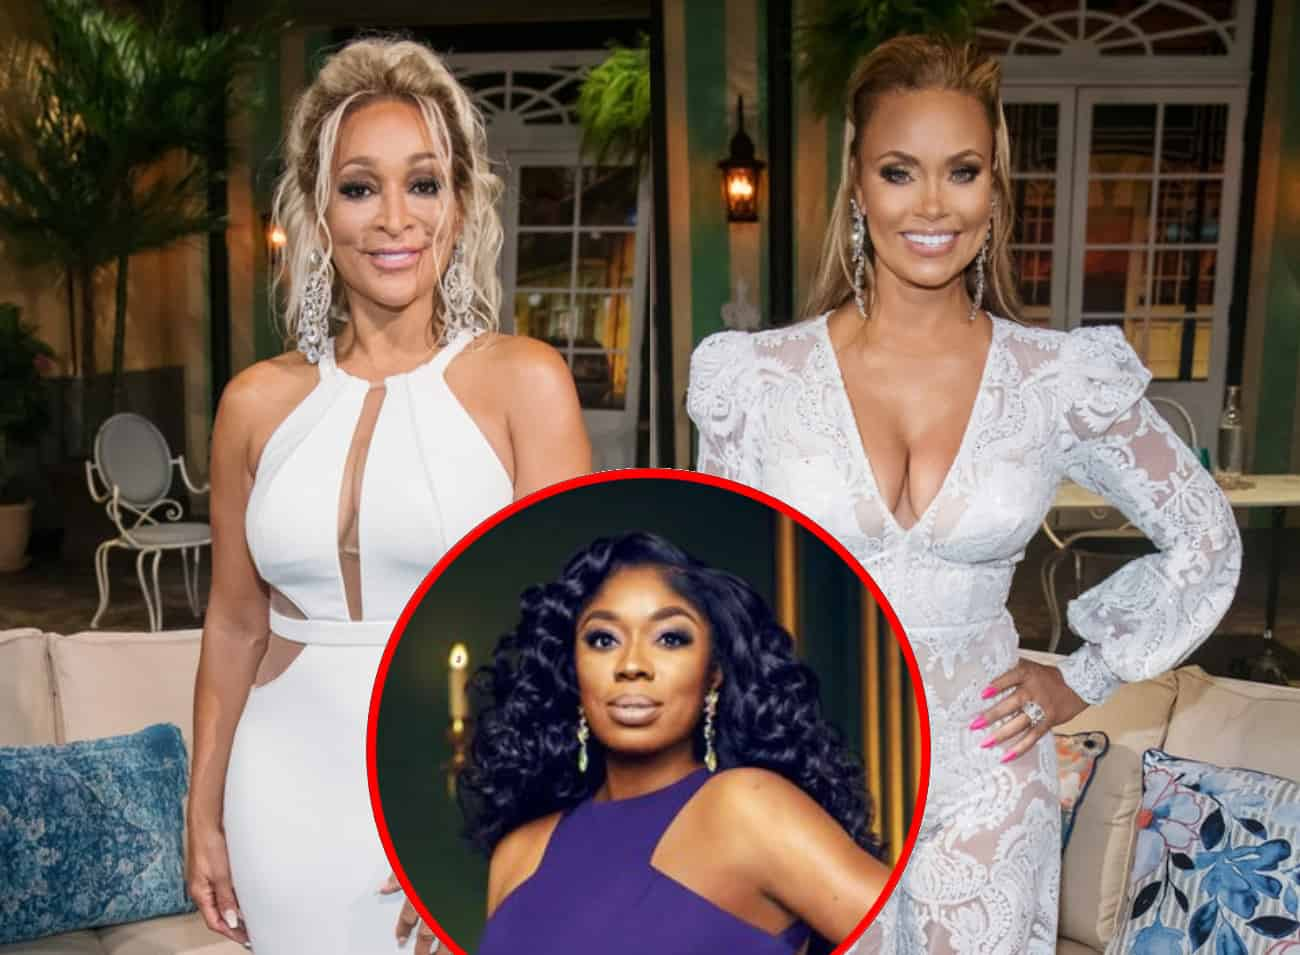 """RHOP's Karen Huger Slams Gizelle For Her """"Twisted Lies"""" About Families of Cast and Says She's """"Not Impressed"""" With """"Rude"""" Newbie Wendy Osefo as Wendy Claps Back by Suggesting Her First Name 'Karen' is Fitting"""